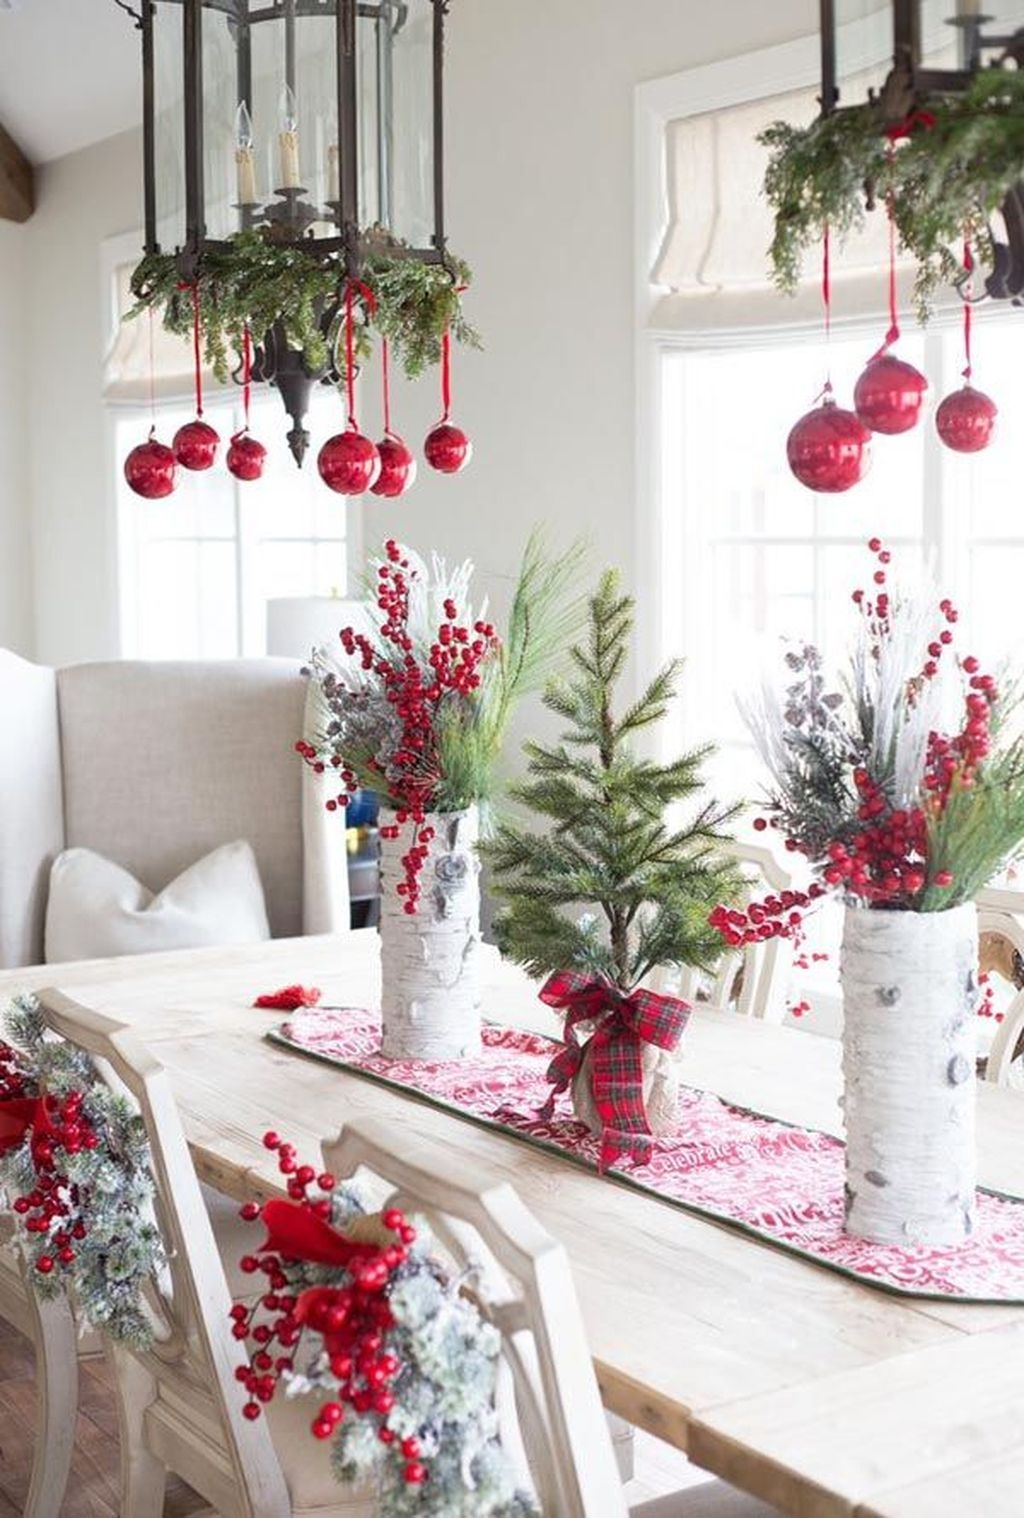 The Best Winter Table Decorations You Need To Try 01